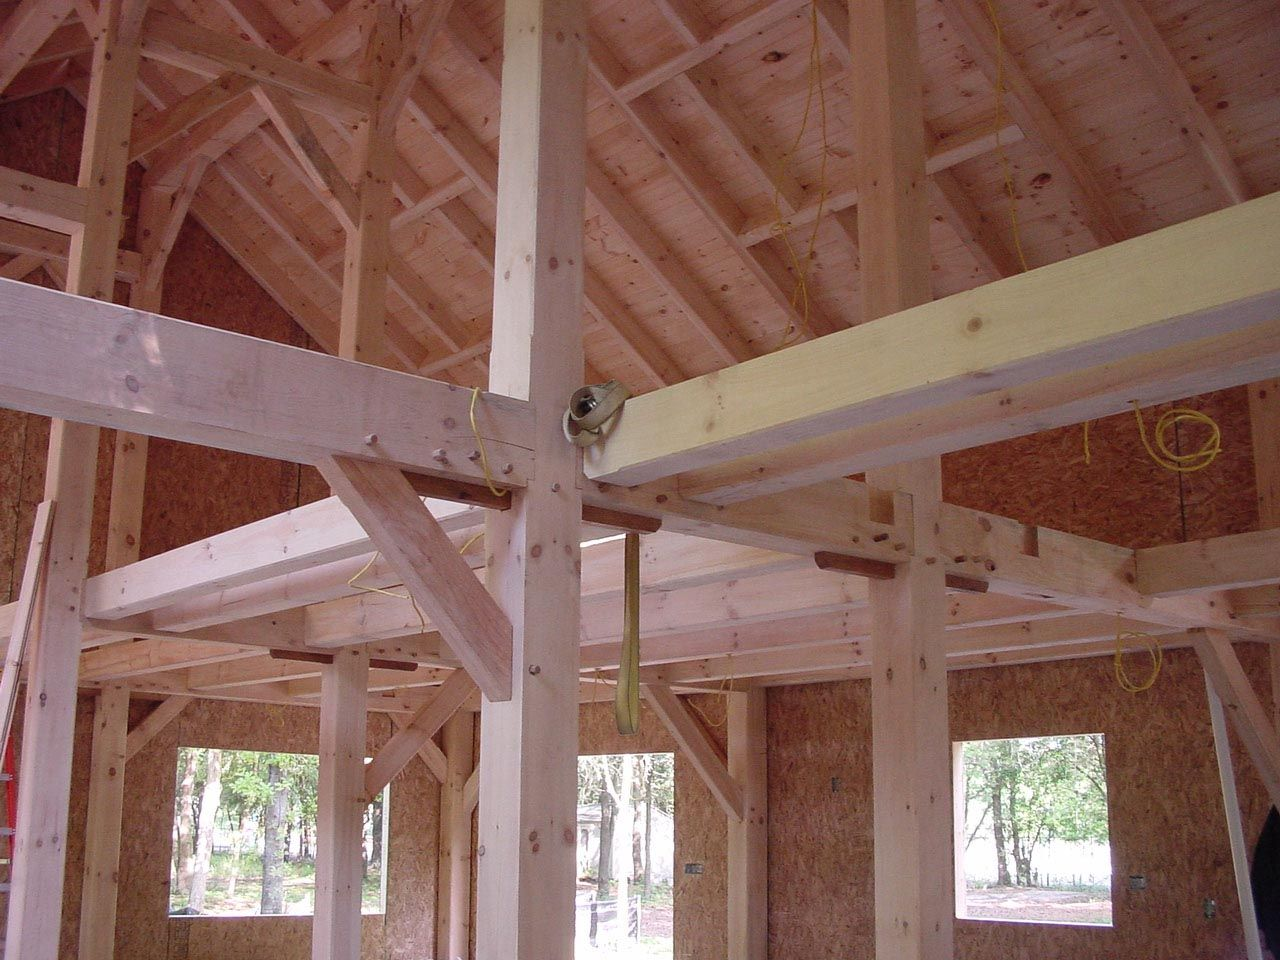 hight resolution of planning wiring in timber frame homes is important and not